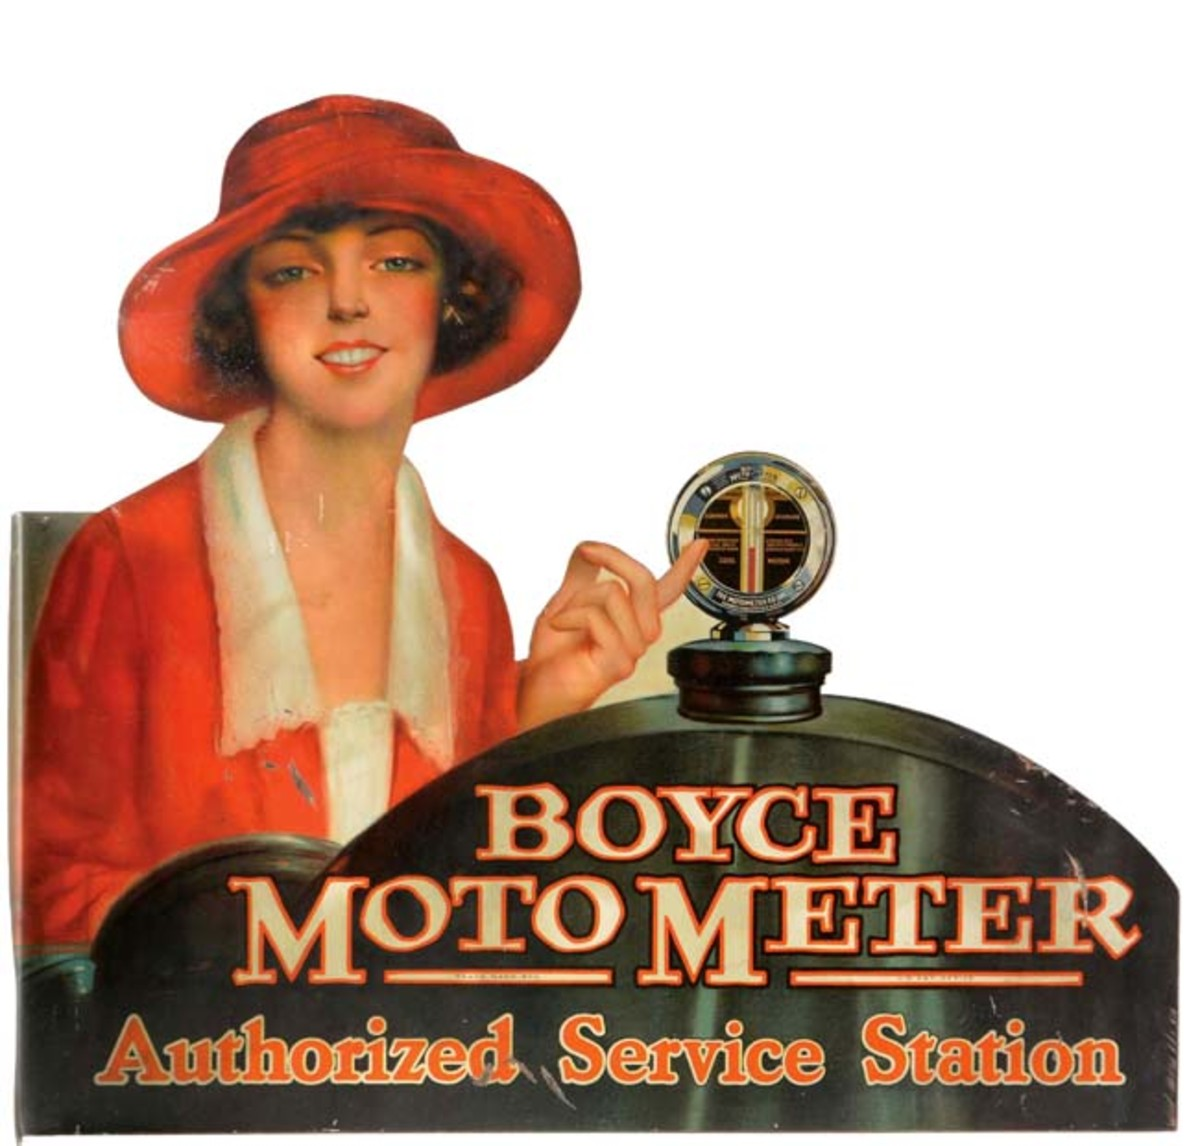 Boyce Moto Meter Authorized Service Station tin flange sign with image of young woman in Art Deco attire, lithographed sides in condition 8.75+ and 8.5, respectively. Estimate: $15,000-$25,000. Photo - Morphy Auctions